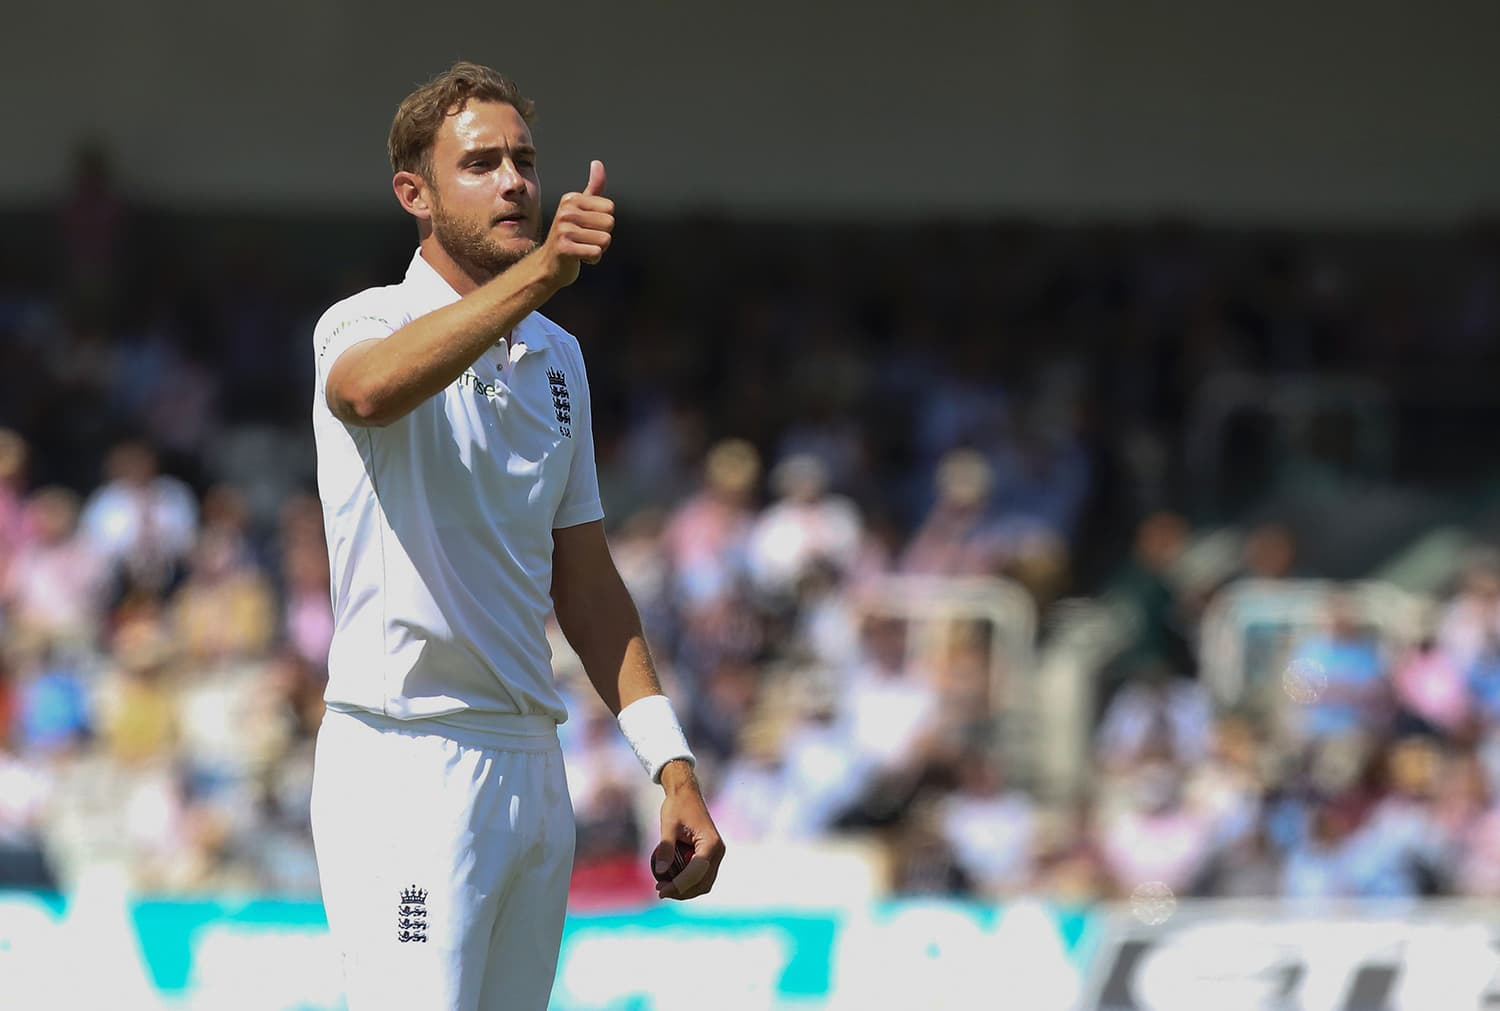 England's Stuart Broad in action. — AFP